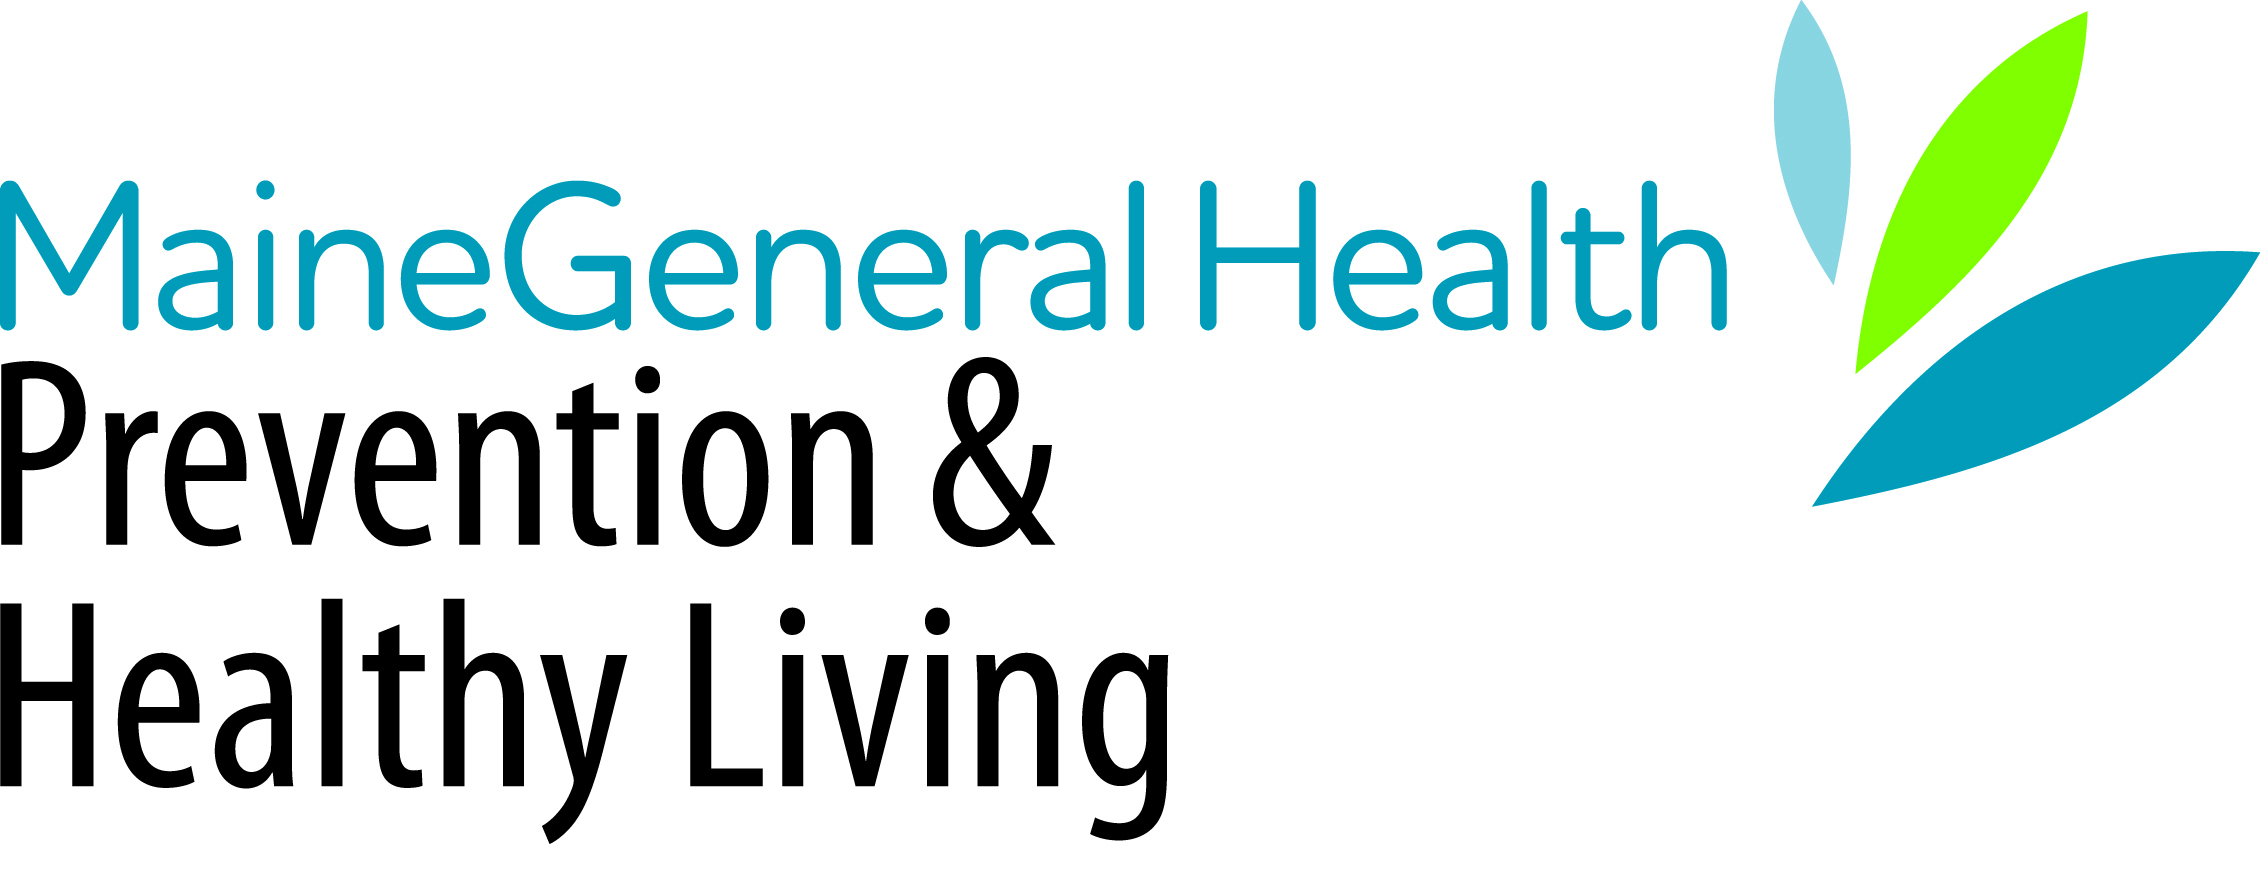 MaineGeneral Prevention & Healthy Living logo